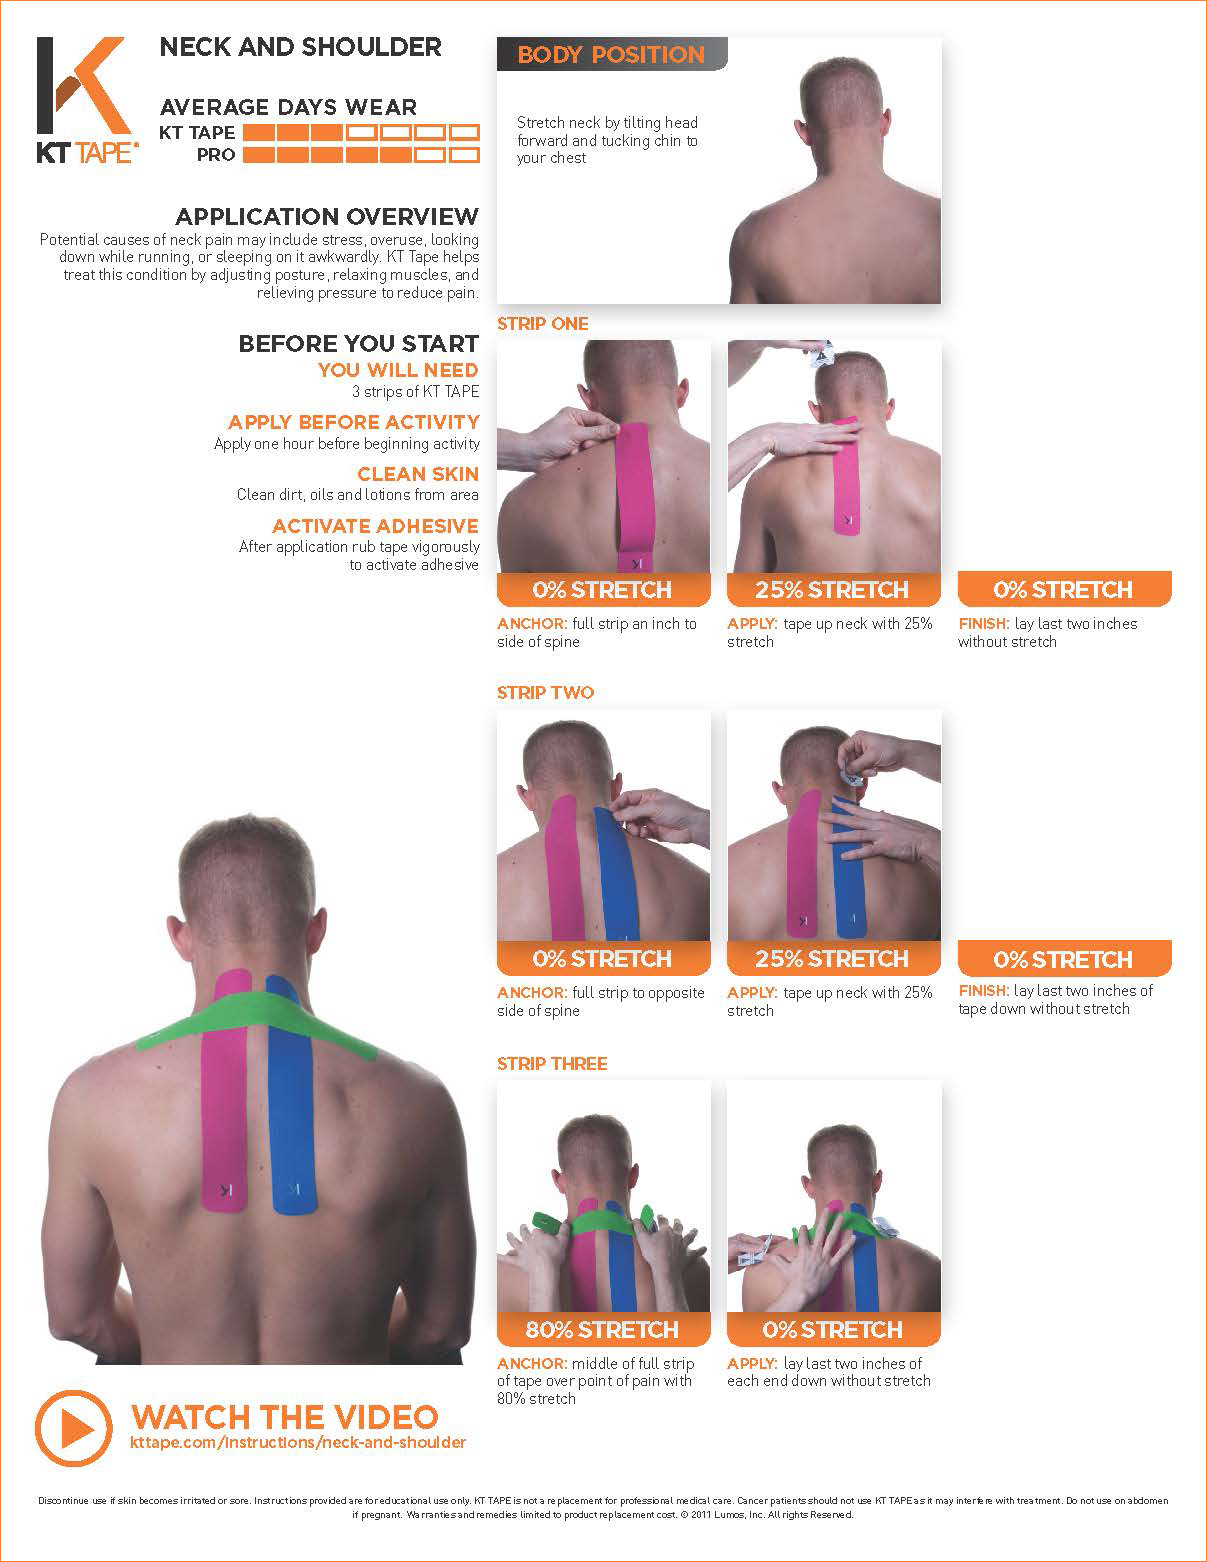 Neck and Shoulder Pain - KT Tape • TheraTape Education Center